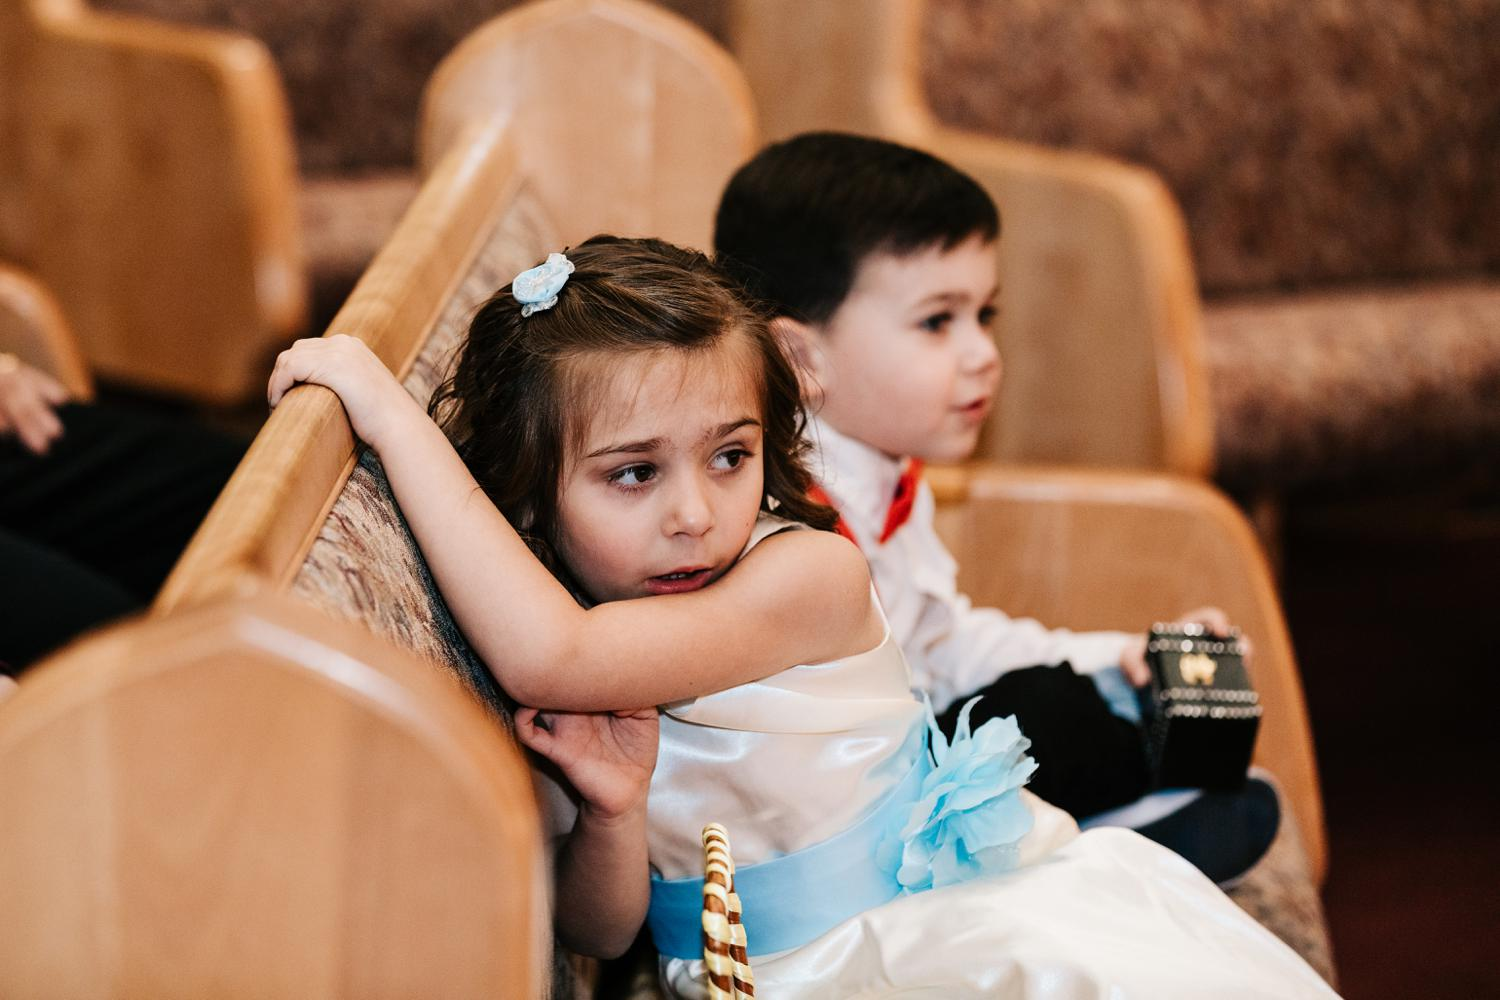 Bride's daughter looking on at wedding ceremony